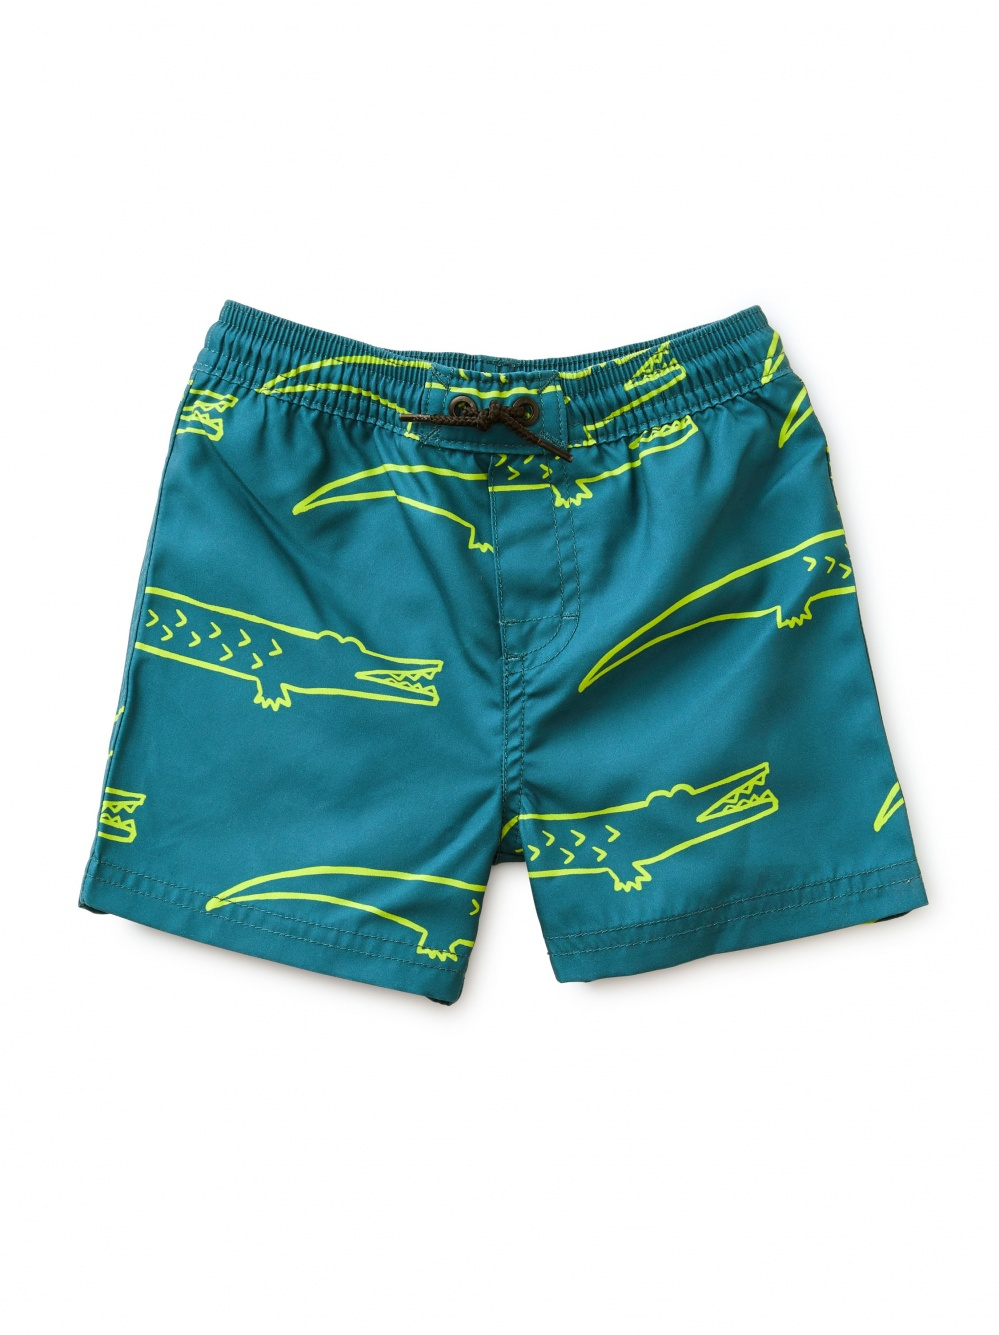 Saved By The Beach Trunks